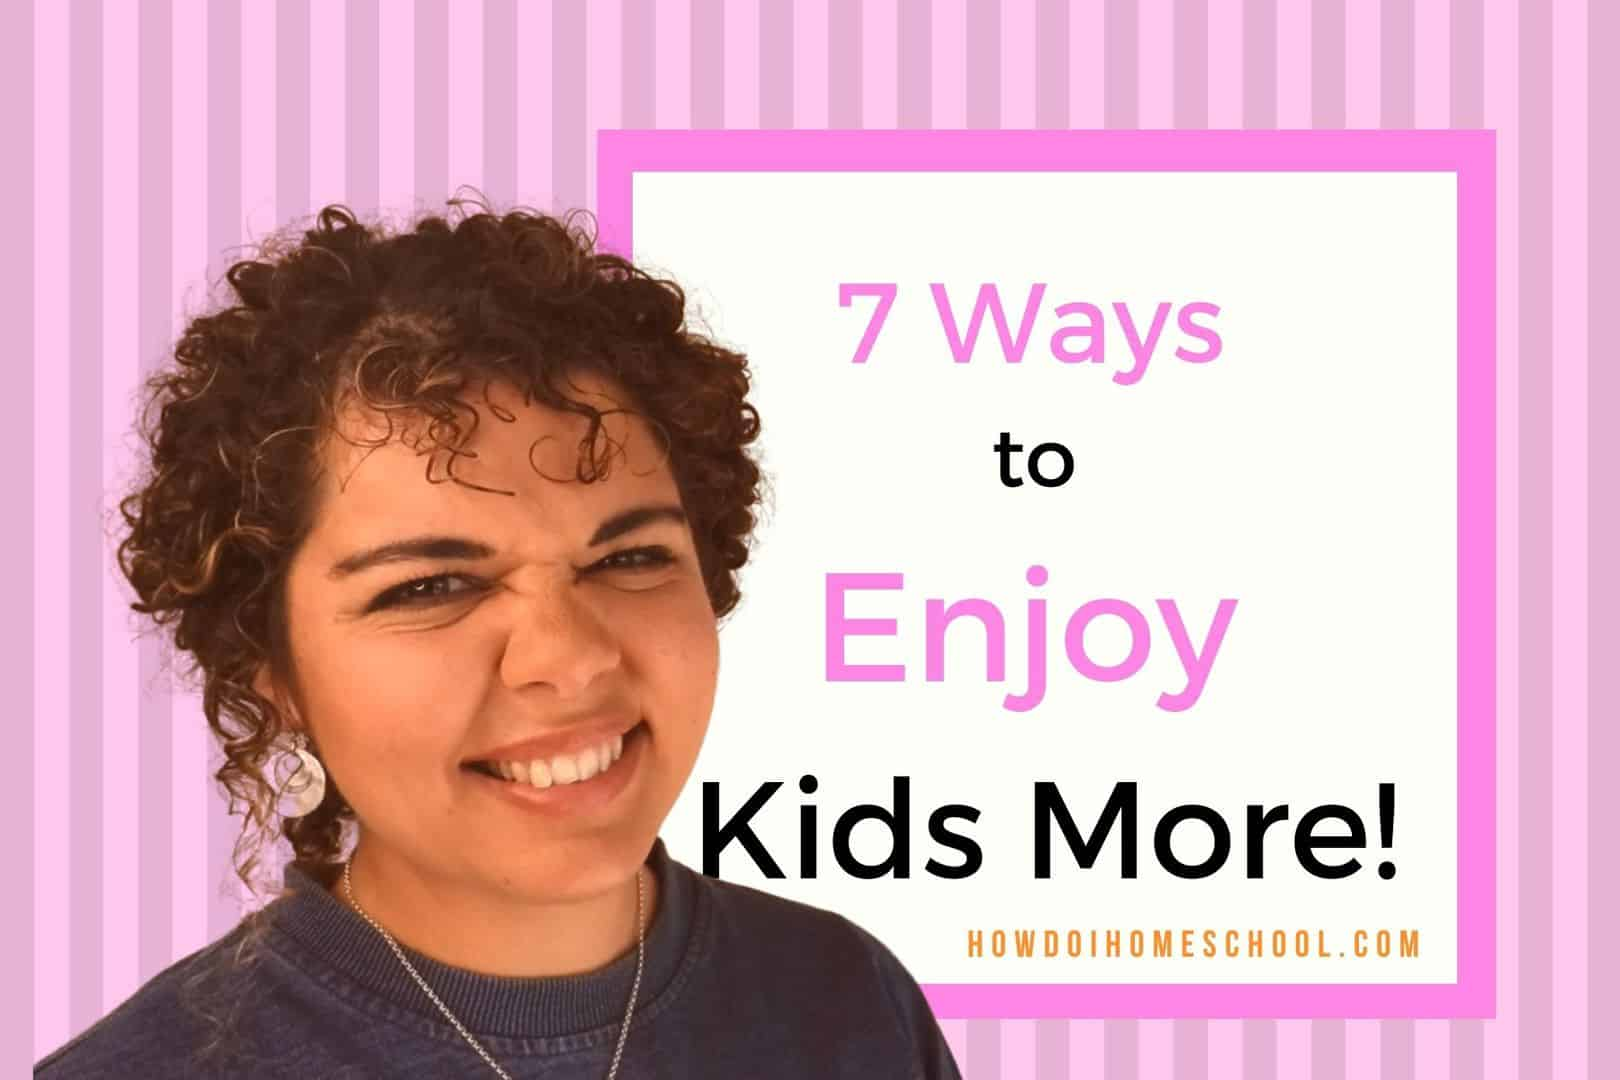 How do you make a child feel loved? How do you enjoy them? In this article and video, we'll be talking about 7 ways to enjoy kids more! #enjoykidsmore